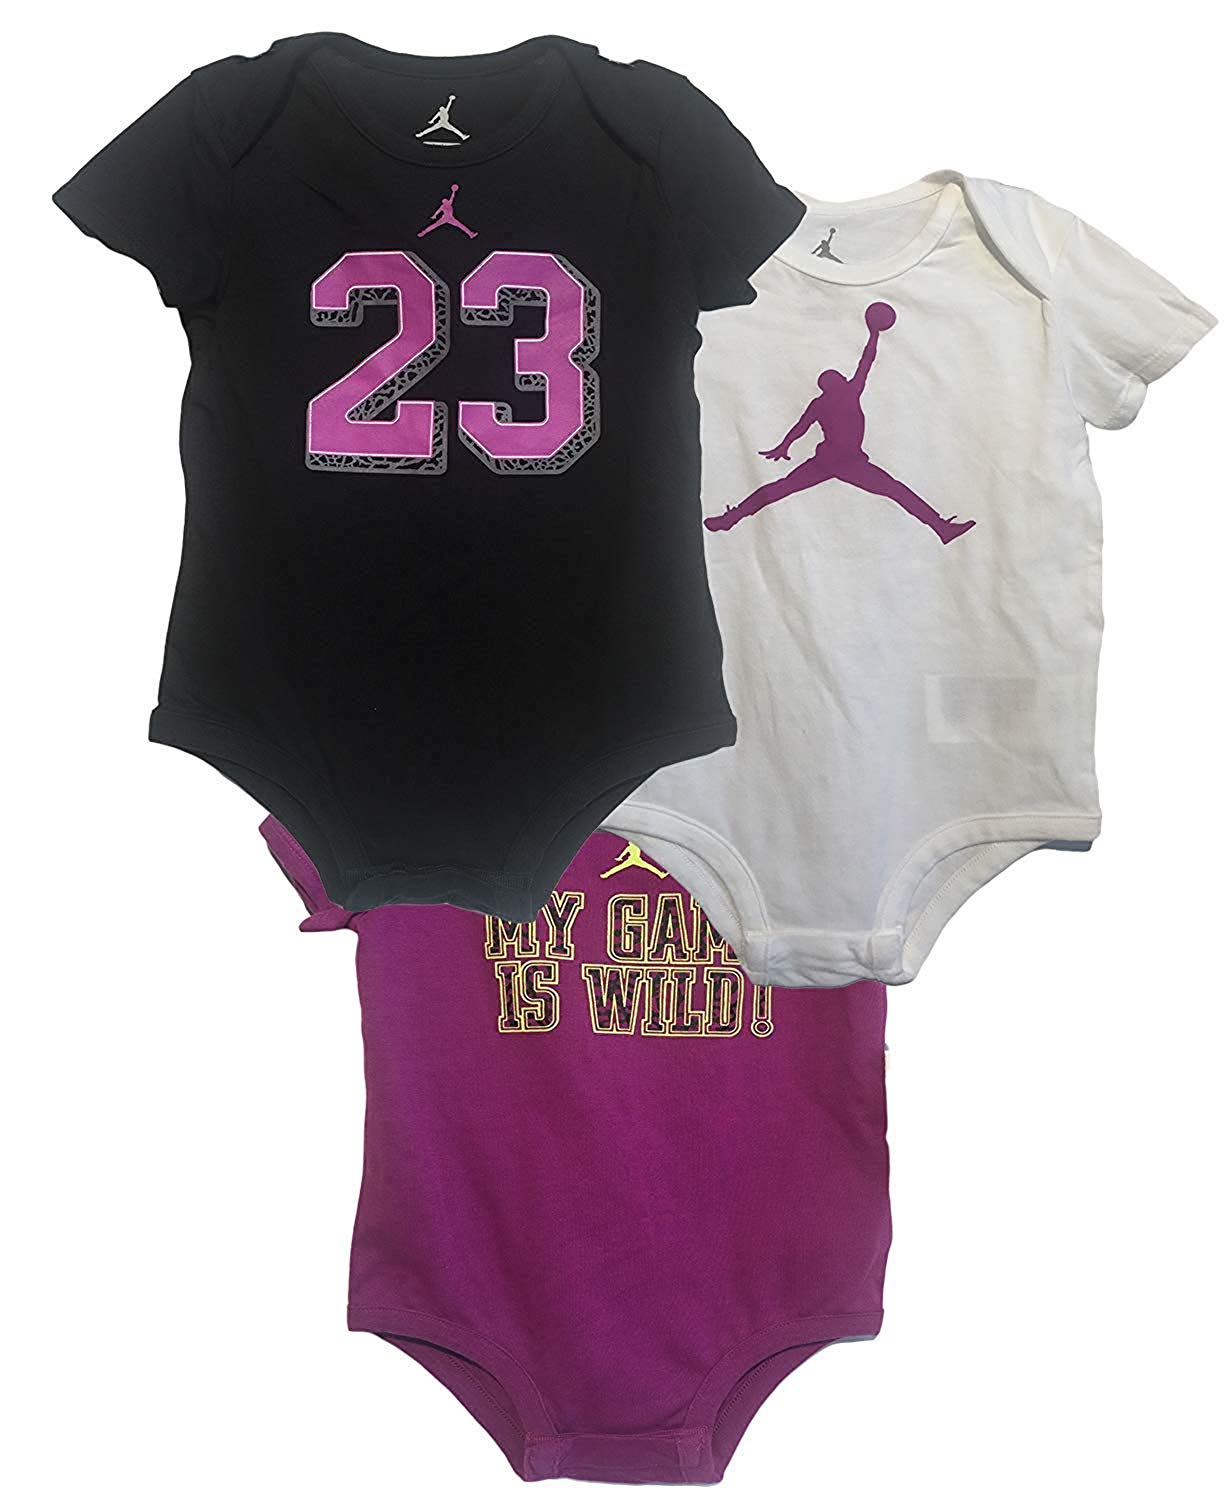 773035d1665 Baby Girls: Air Jordan Infant 3PC Bodysuit Set - Baby Clothes, Baby ...